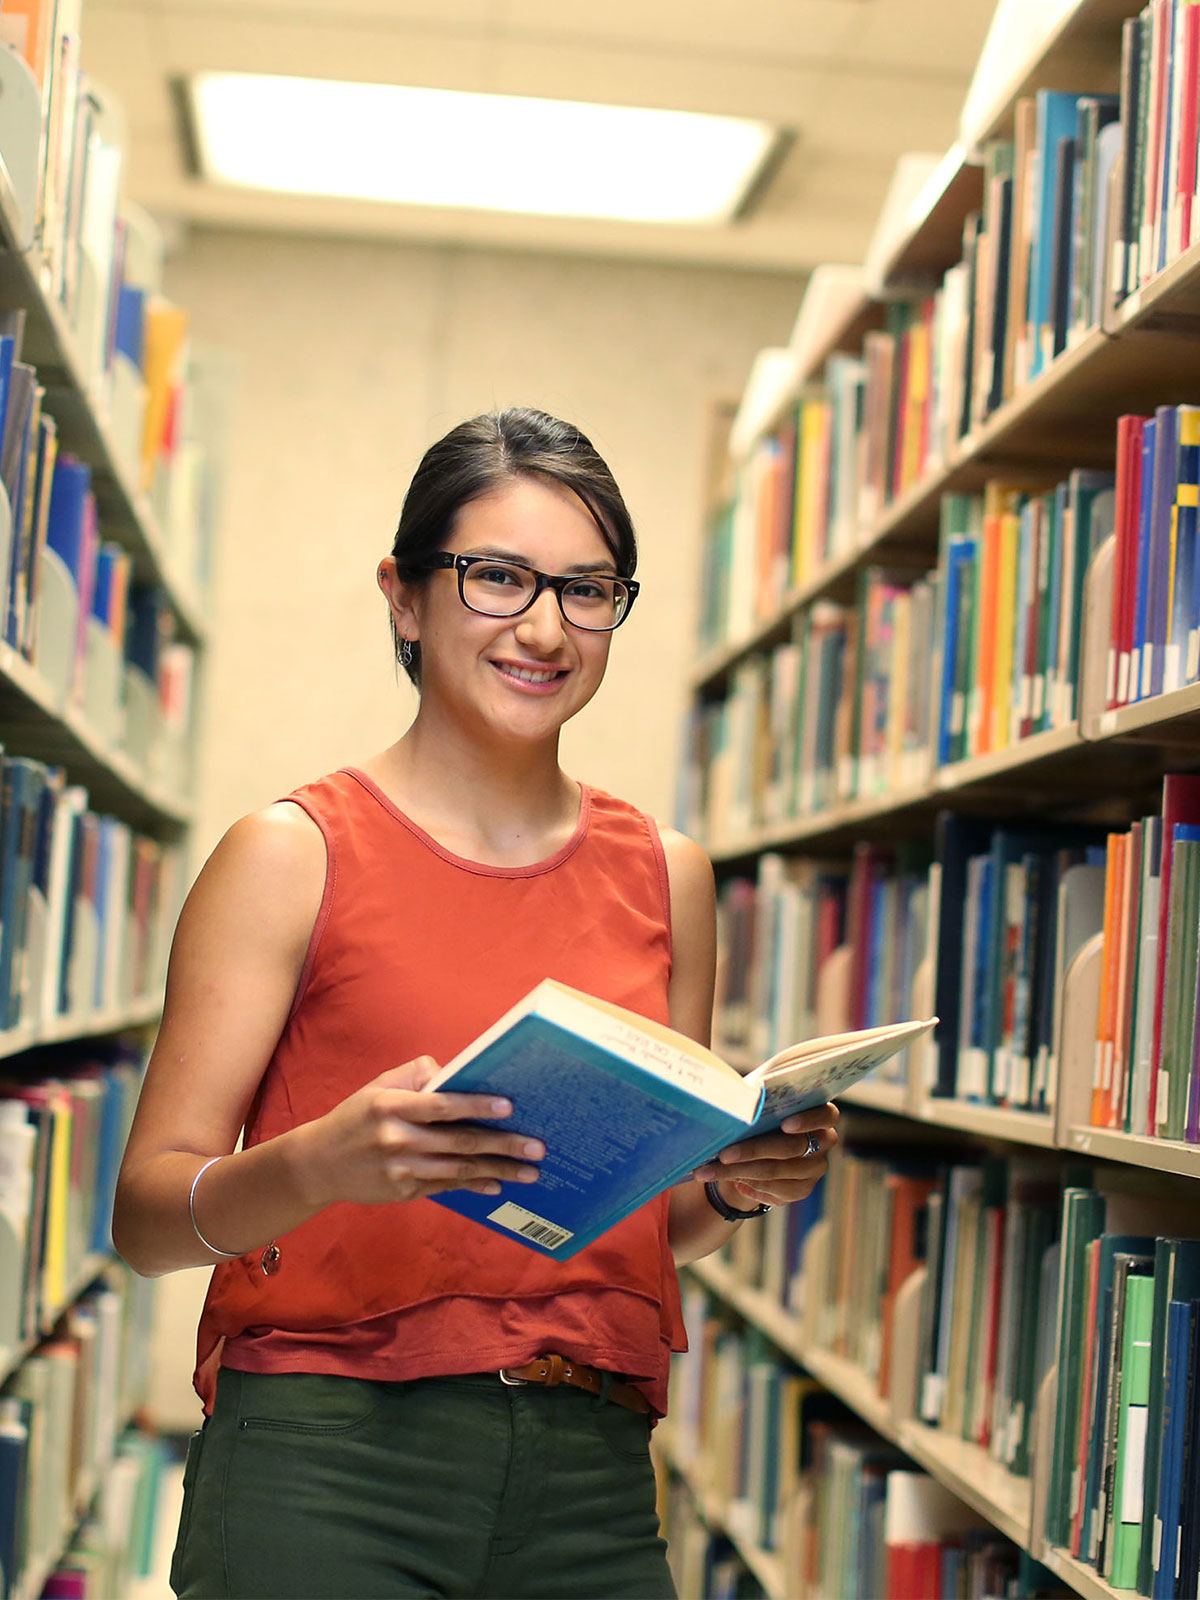 Student holding a book in library